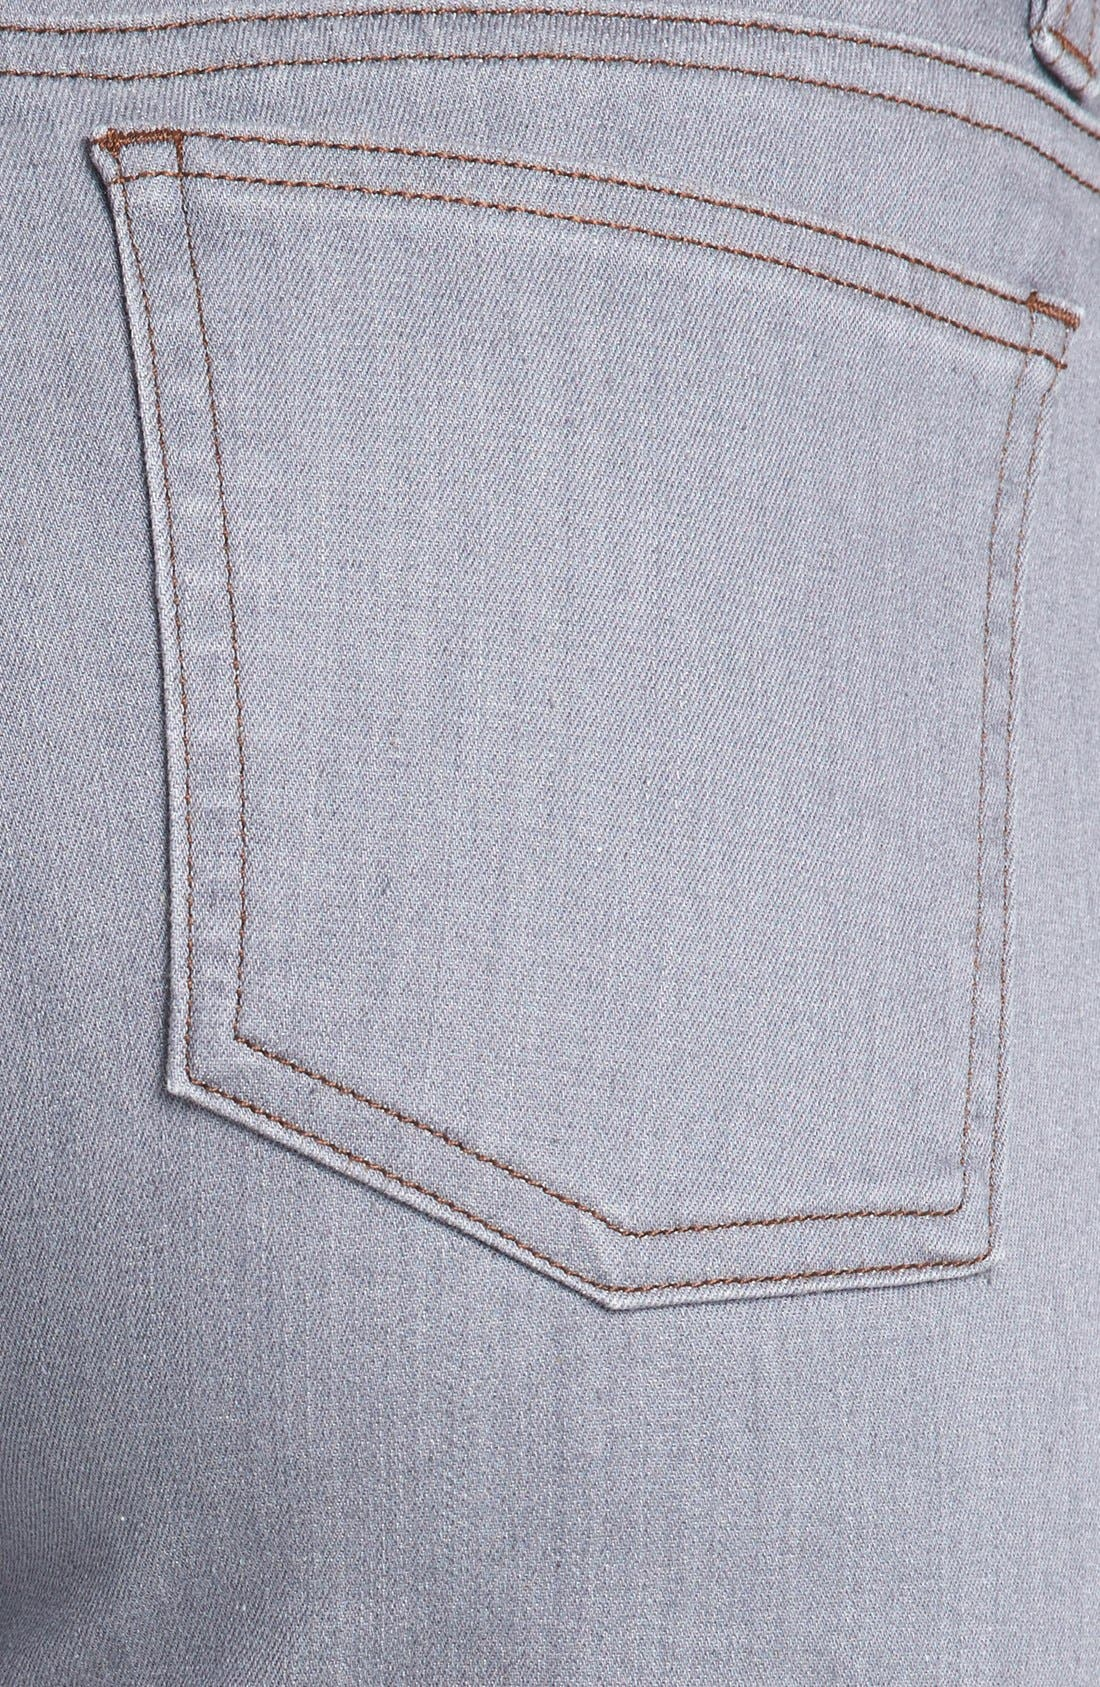 Alternate Image 3  - Eileen Fisher Skinny Jeans (Regular & Petite)